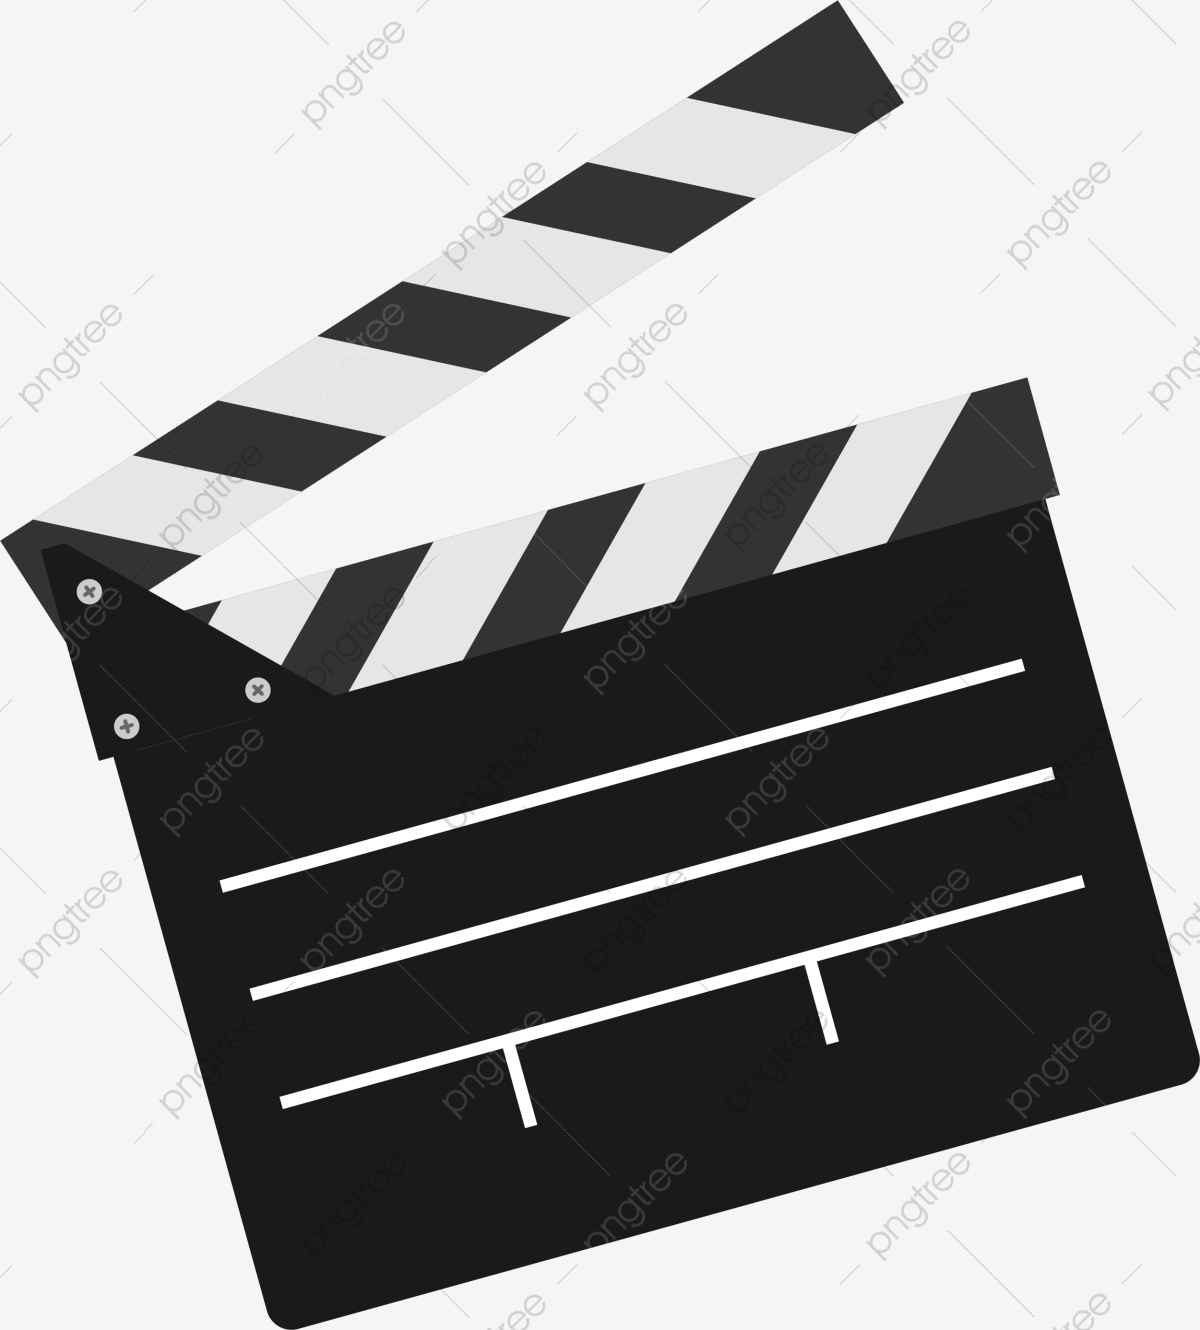 Download for free png. Movie clipart movie clapper